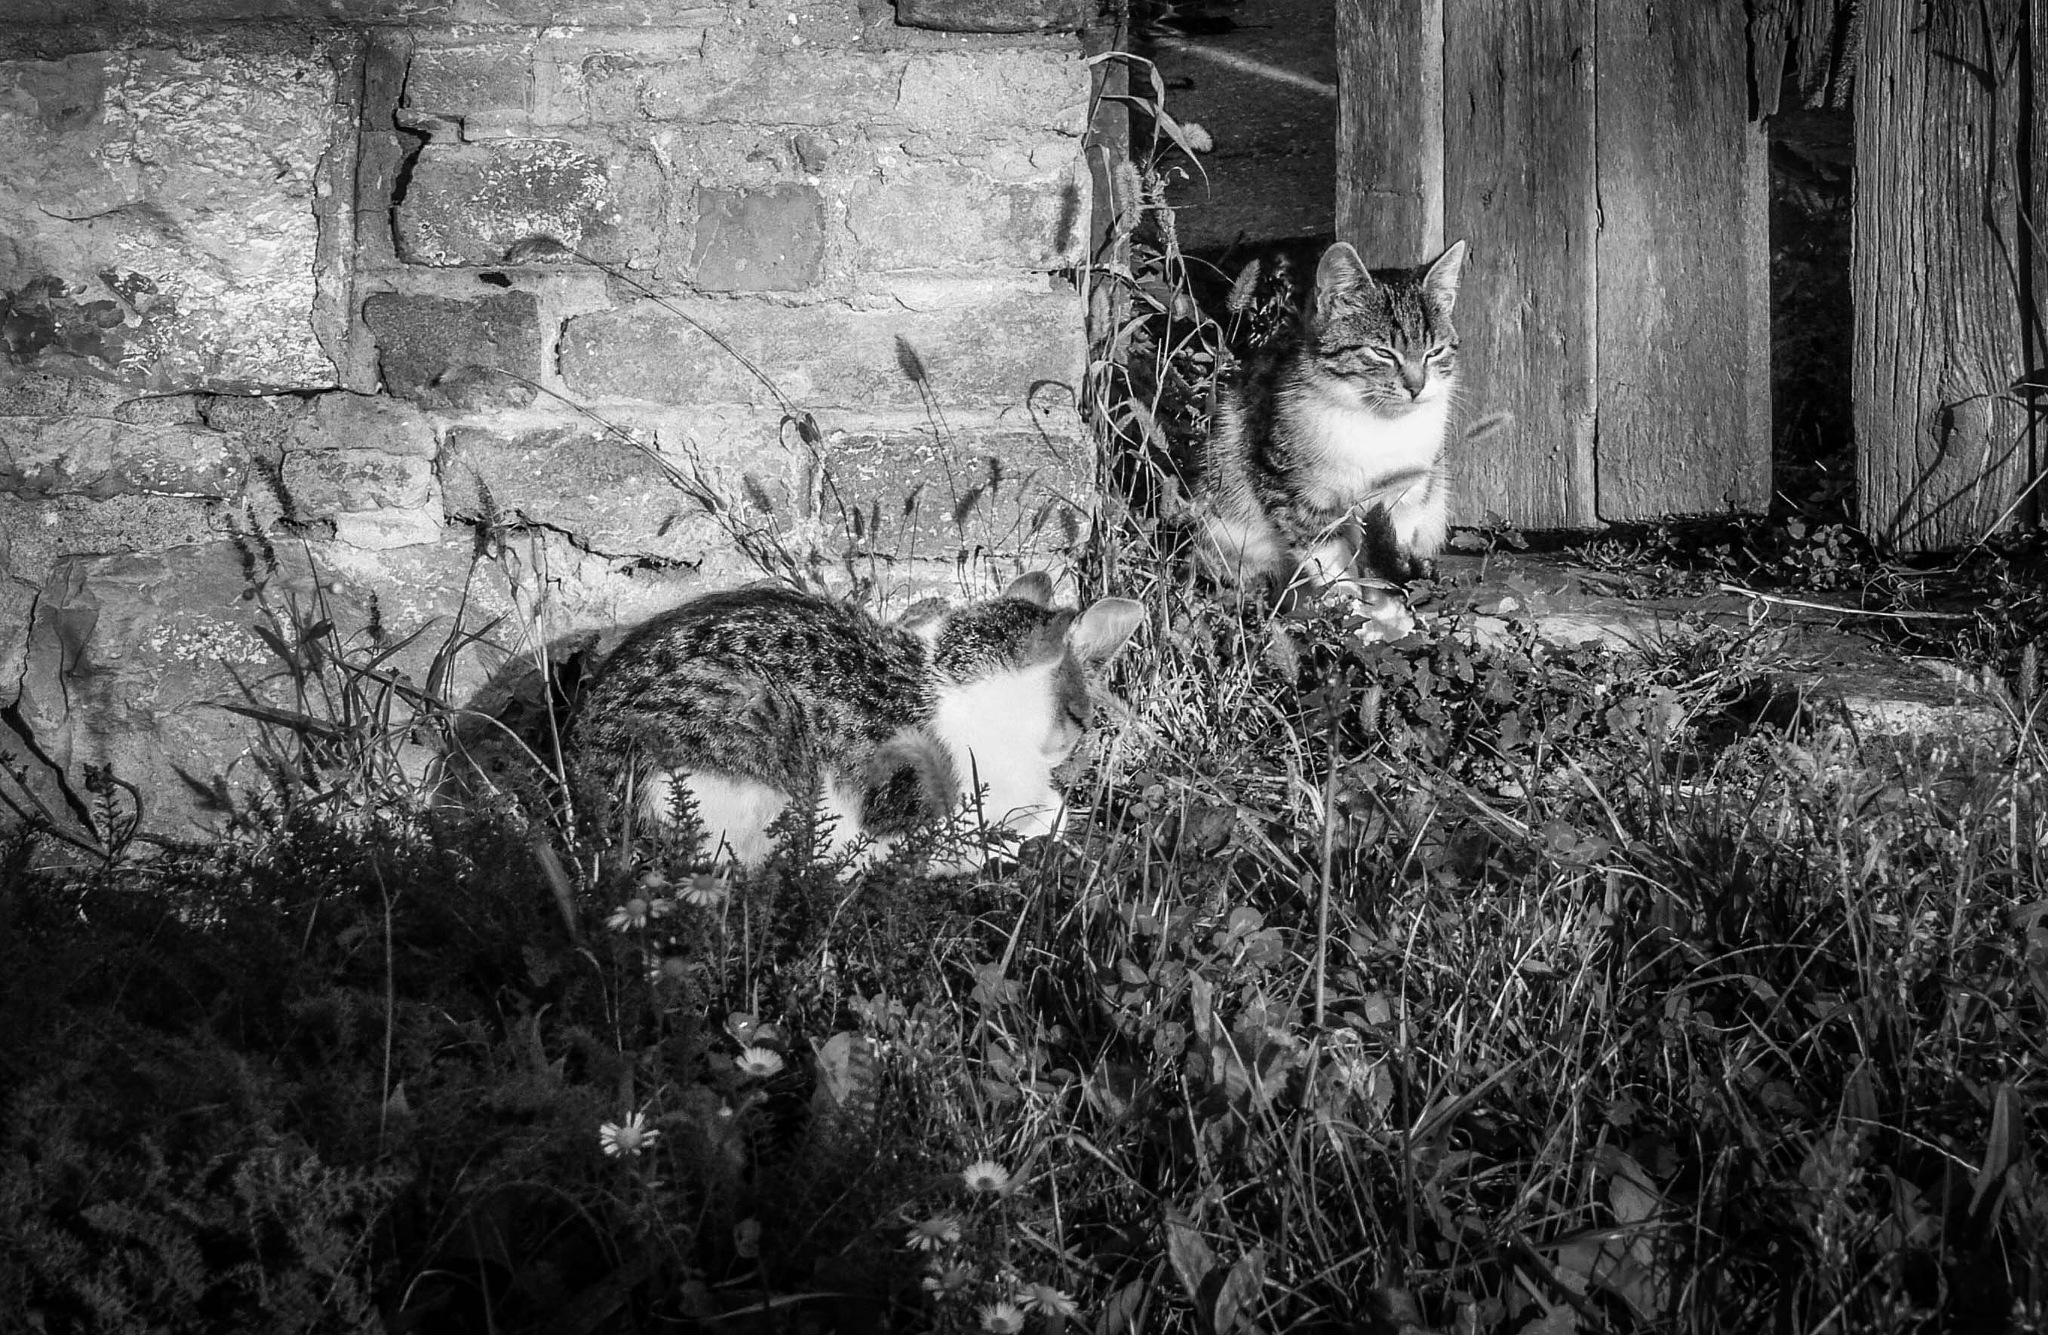 cats by Sziszi_photo_art